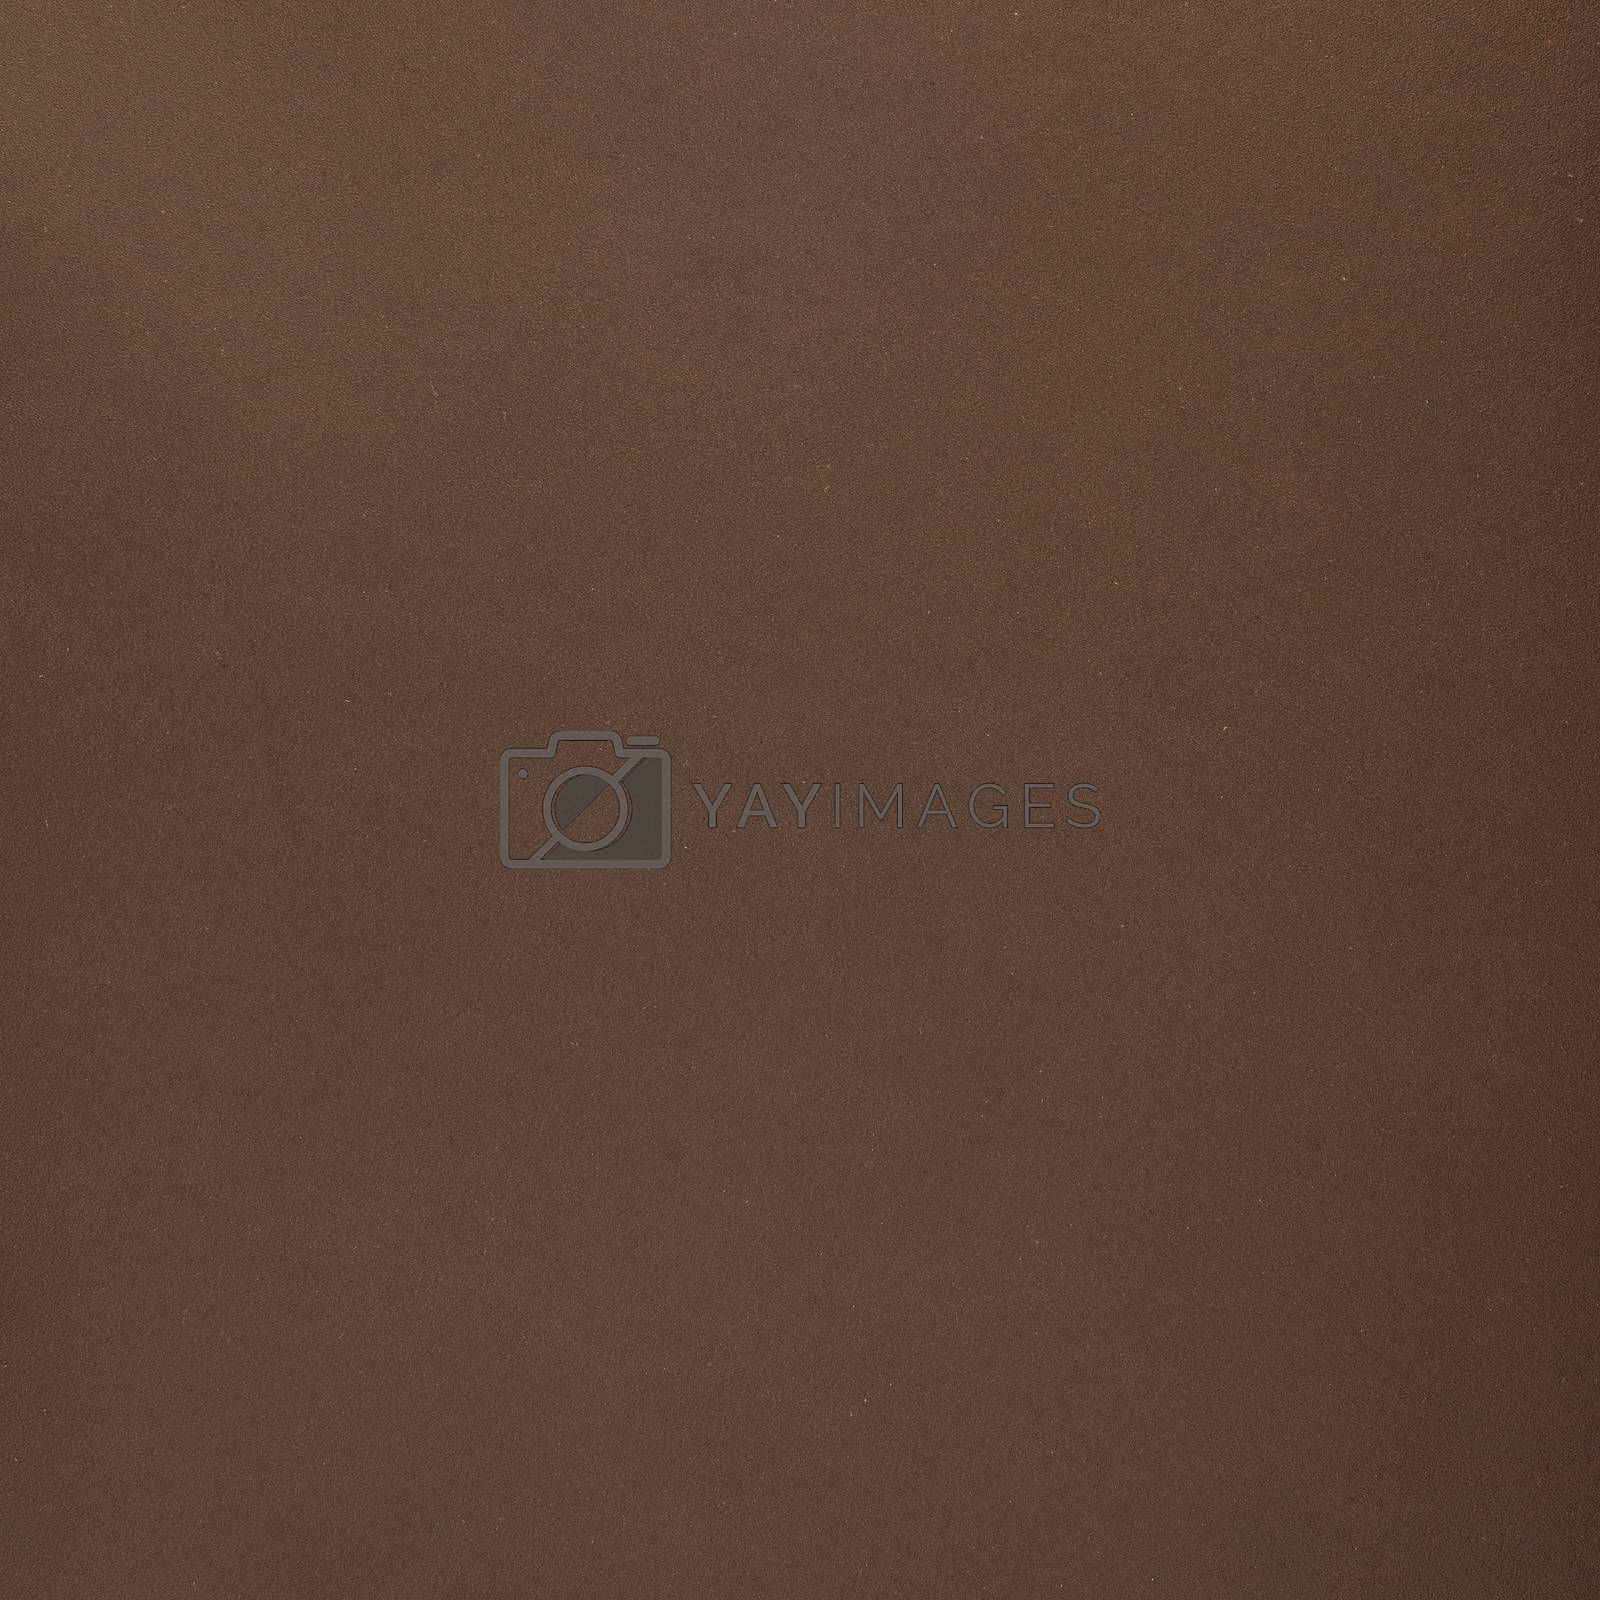 Royalty free image of Brown leather by homydesign